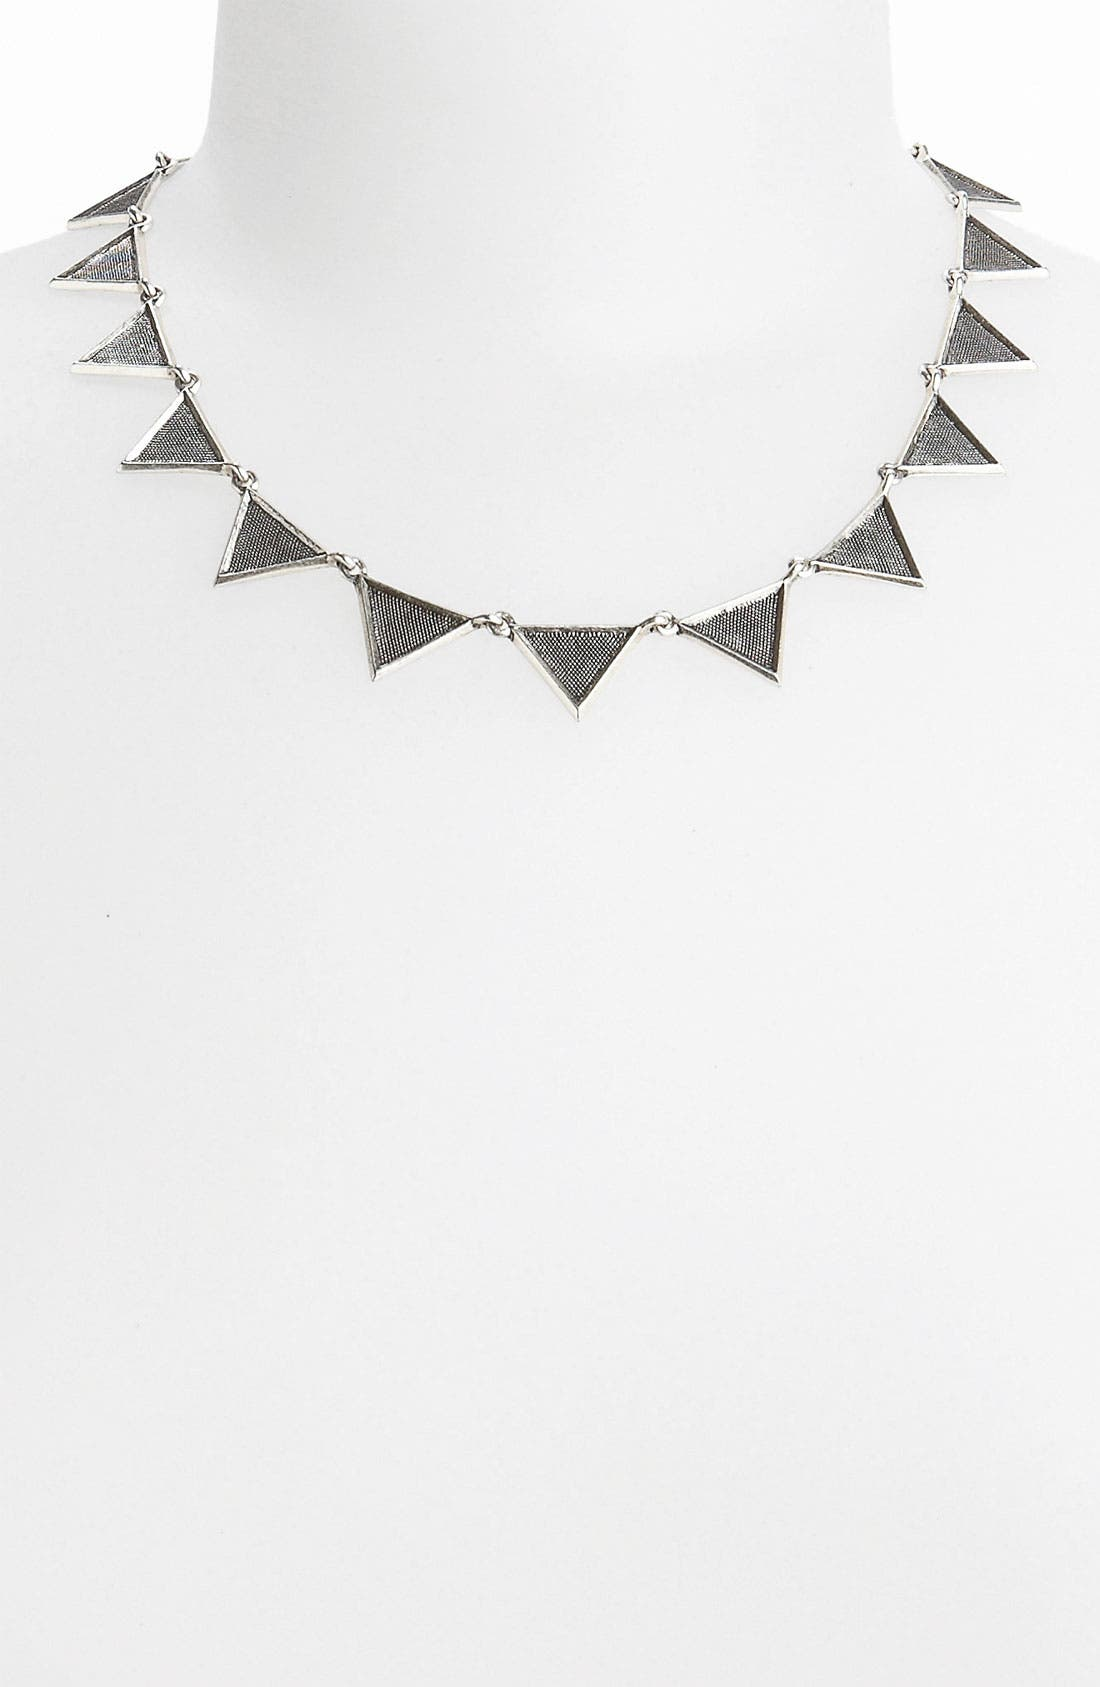 HOUSE OF HARLOW 1960, Crosshatched Triangle Collar Necklace, Main thumbnail 1, color, 040